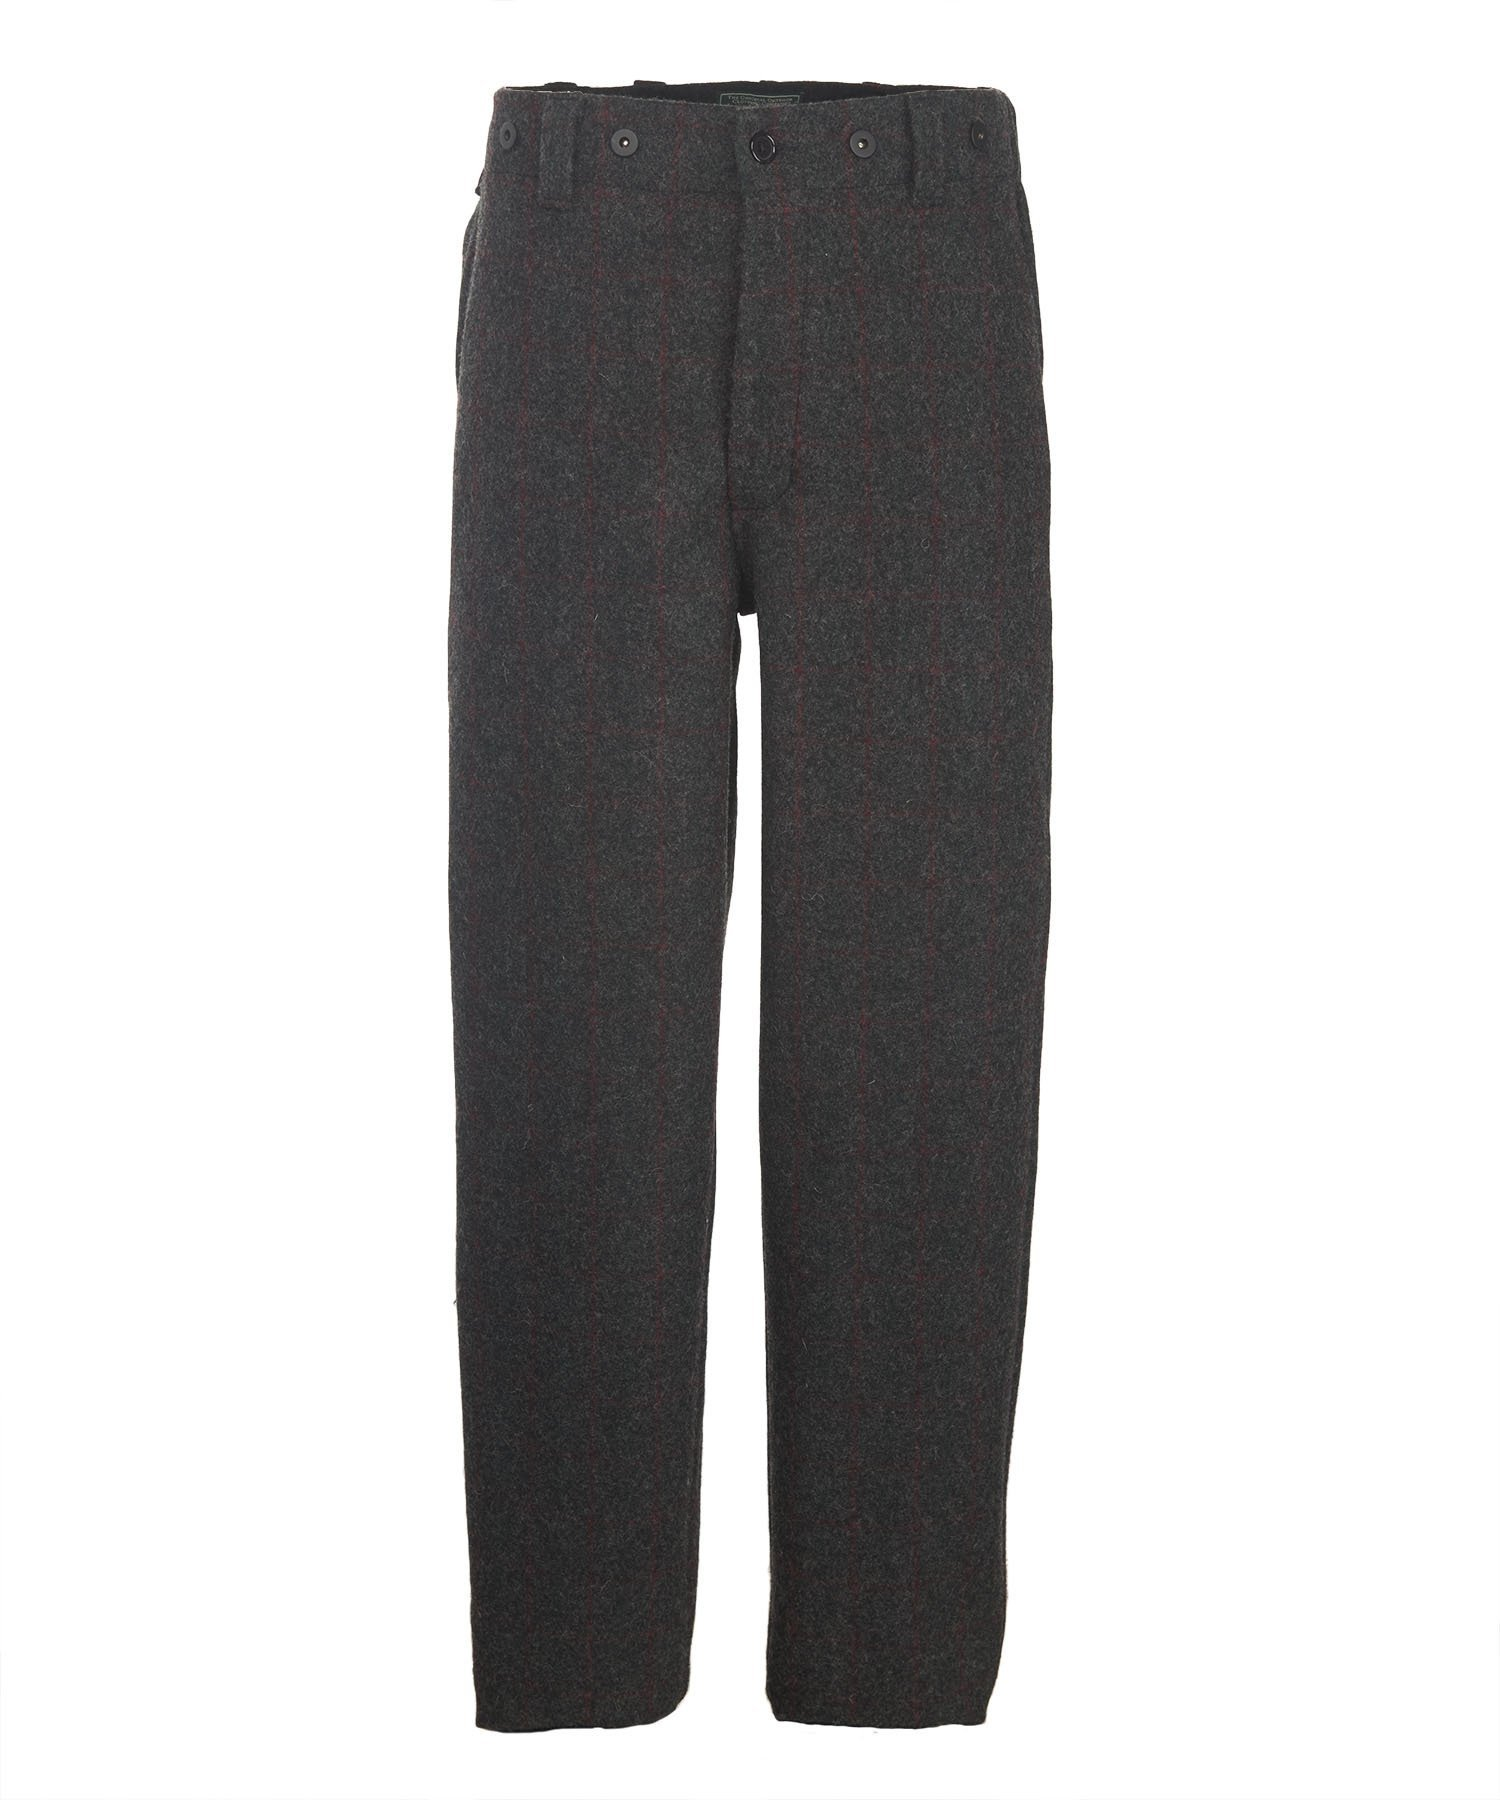 Woolrich Men's Malone Wool Pant, No Color, 34x36